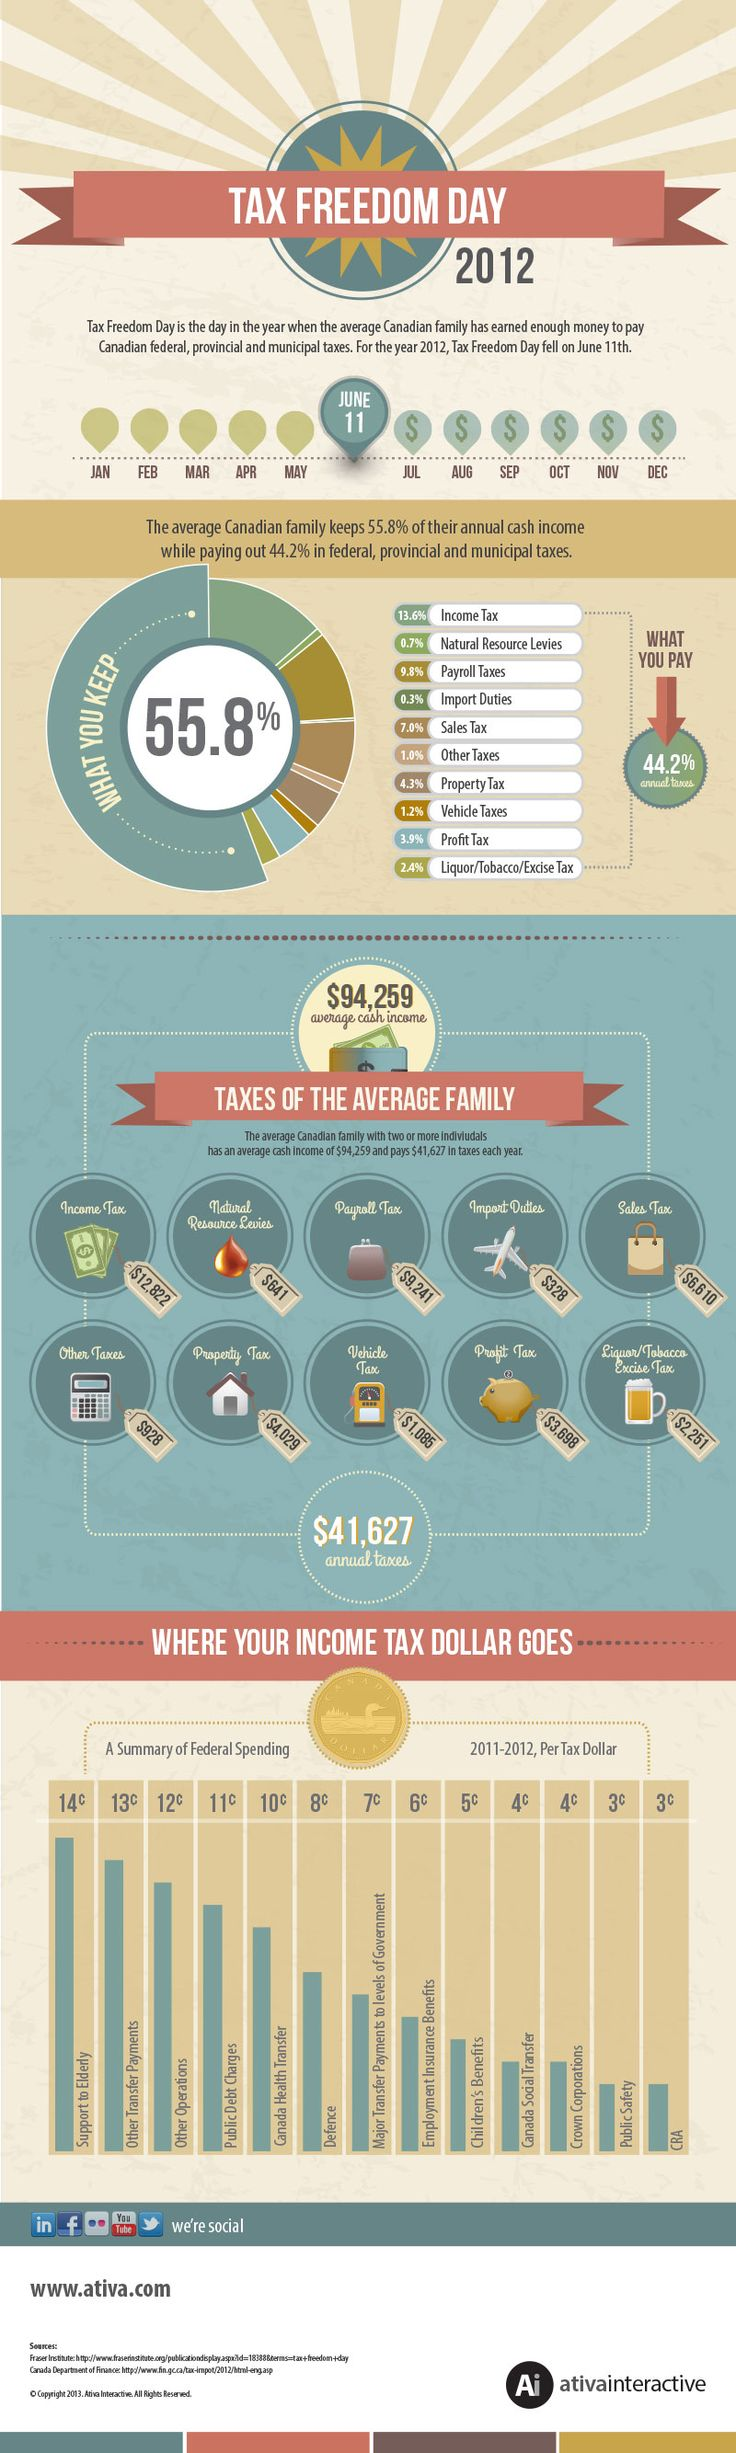 Infographic: Tax Freedom Day 2012